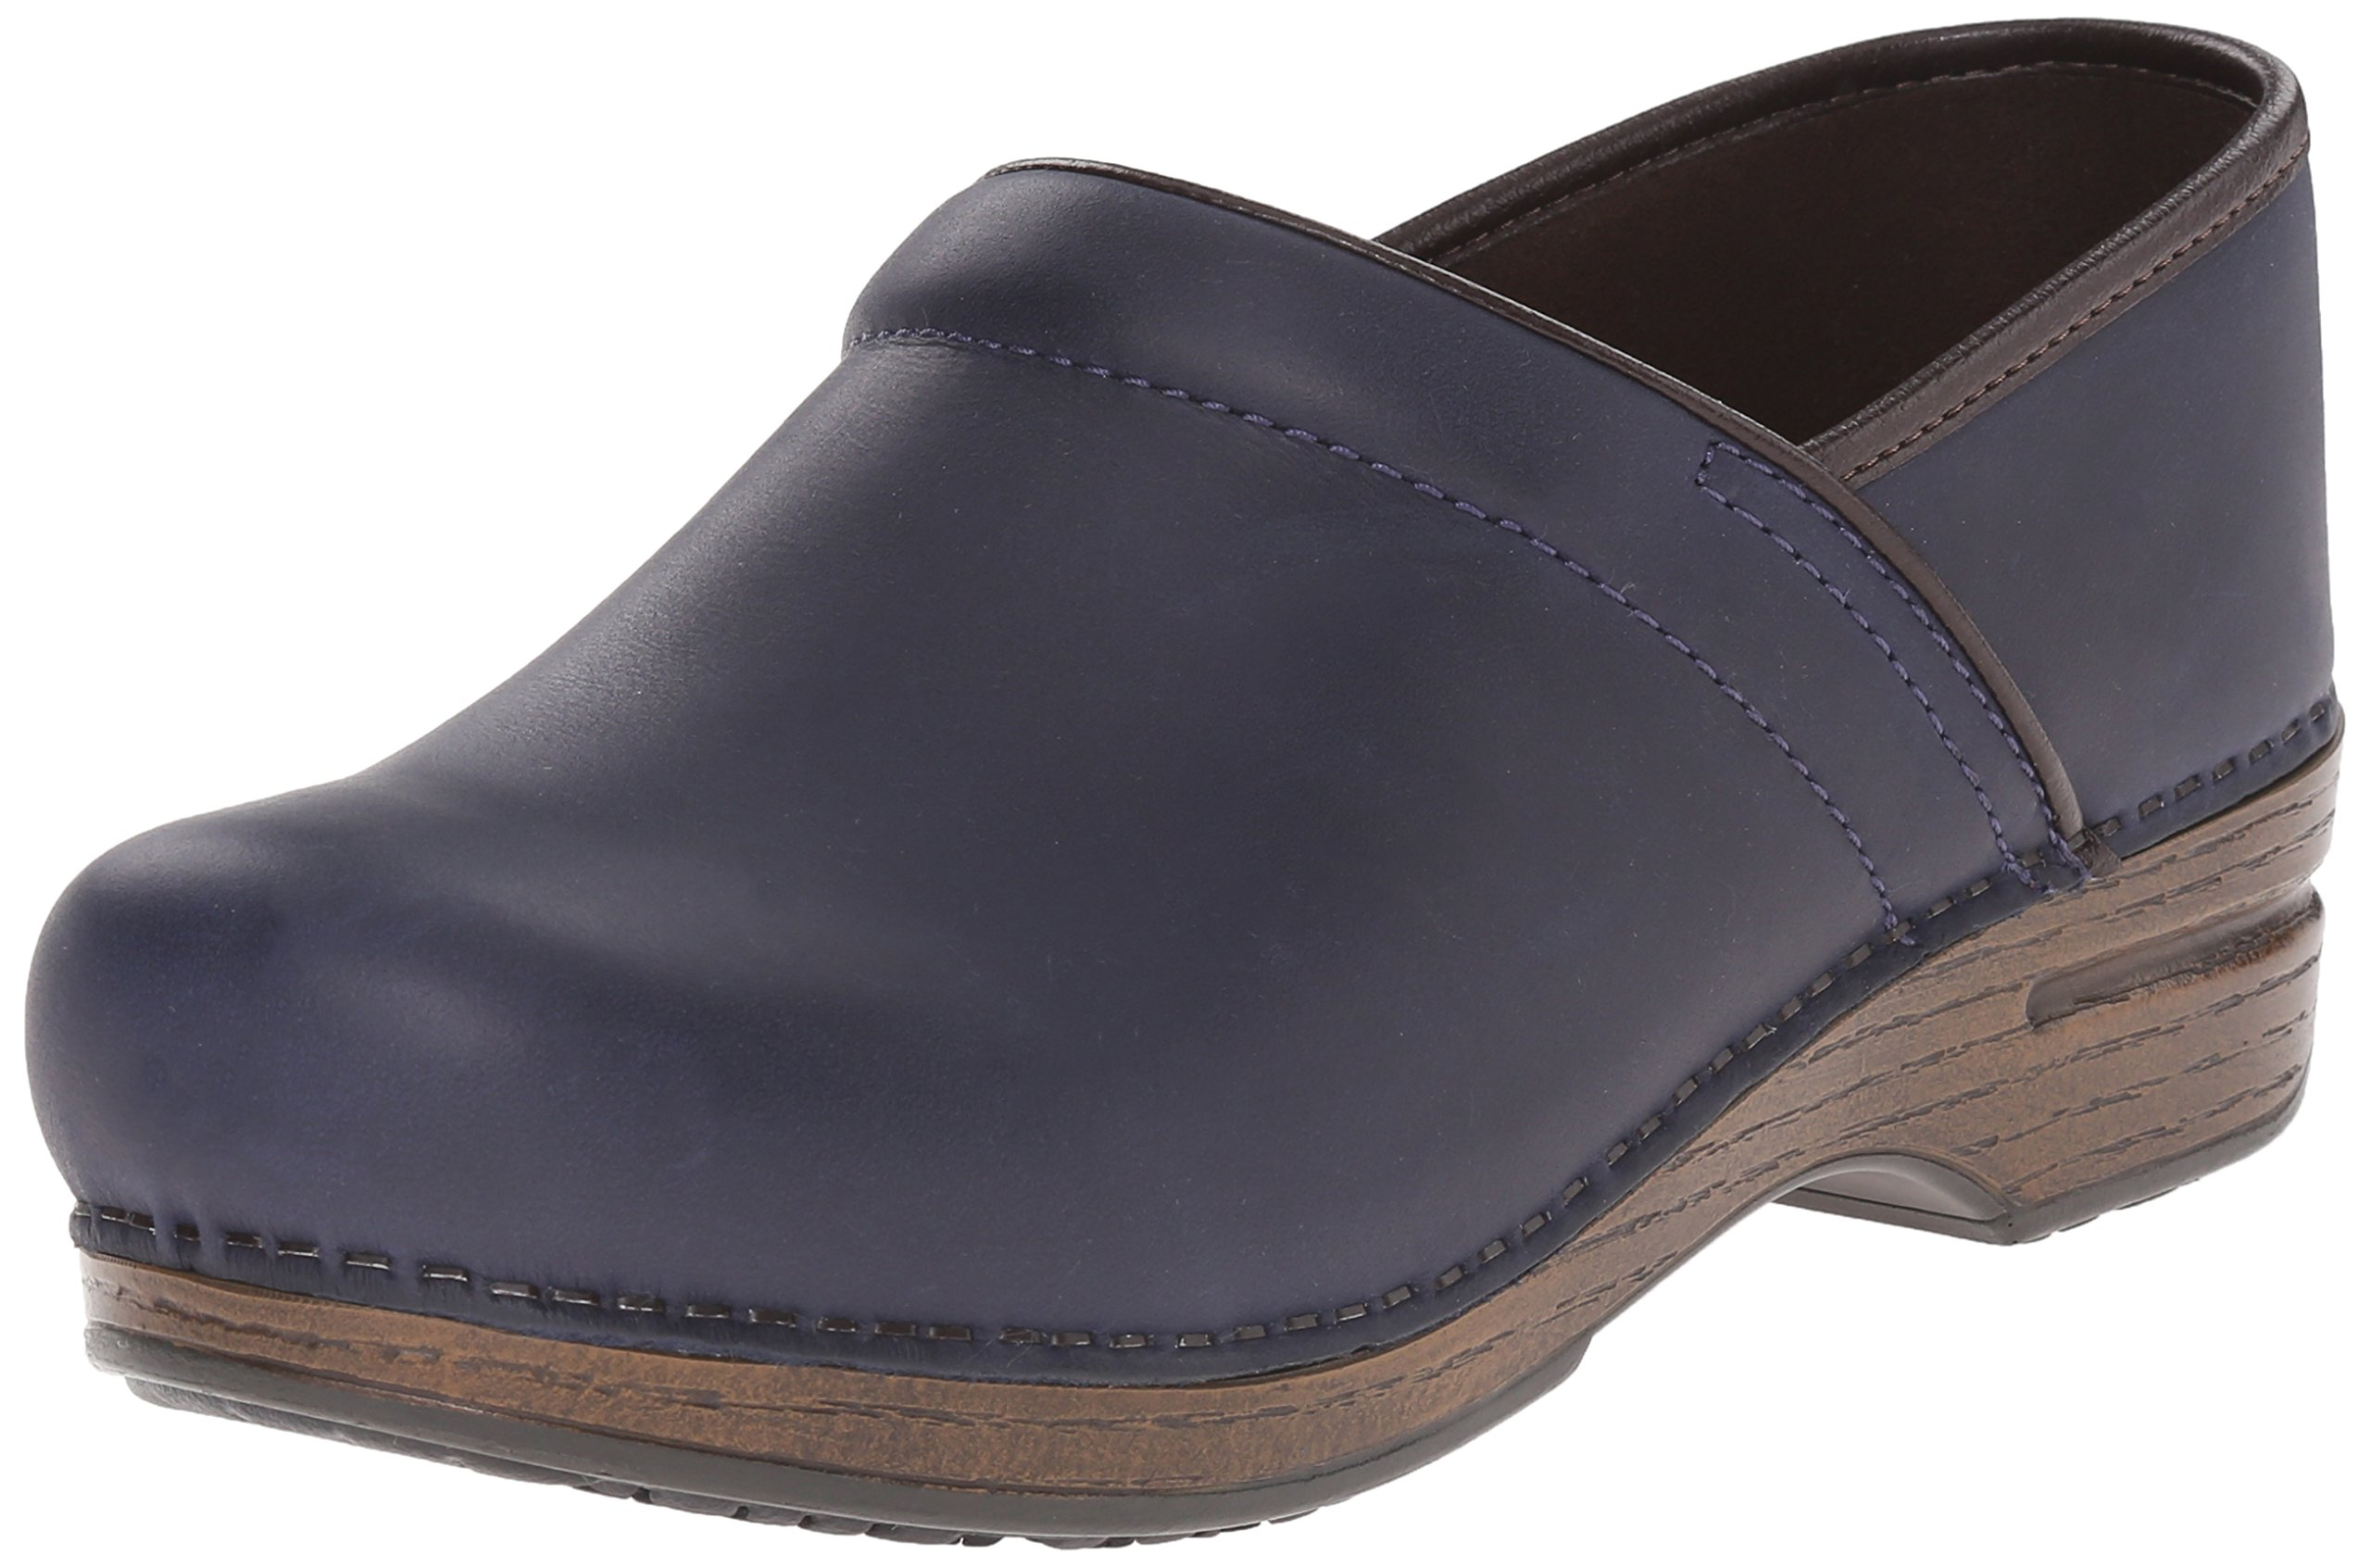 Dansko Women's Pro XP Navy Oiled Mule, 38 EU/7.5-8 M US